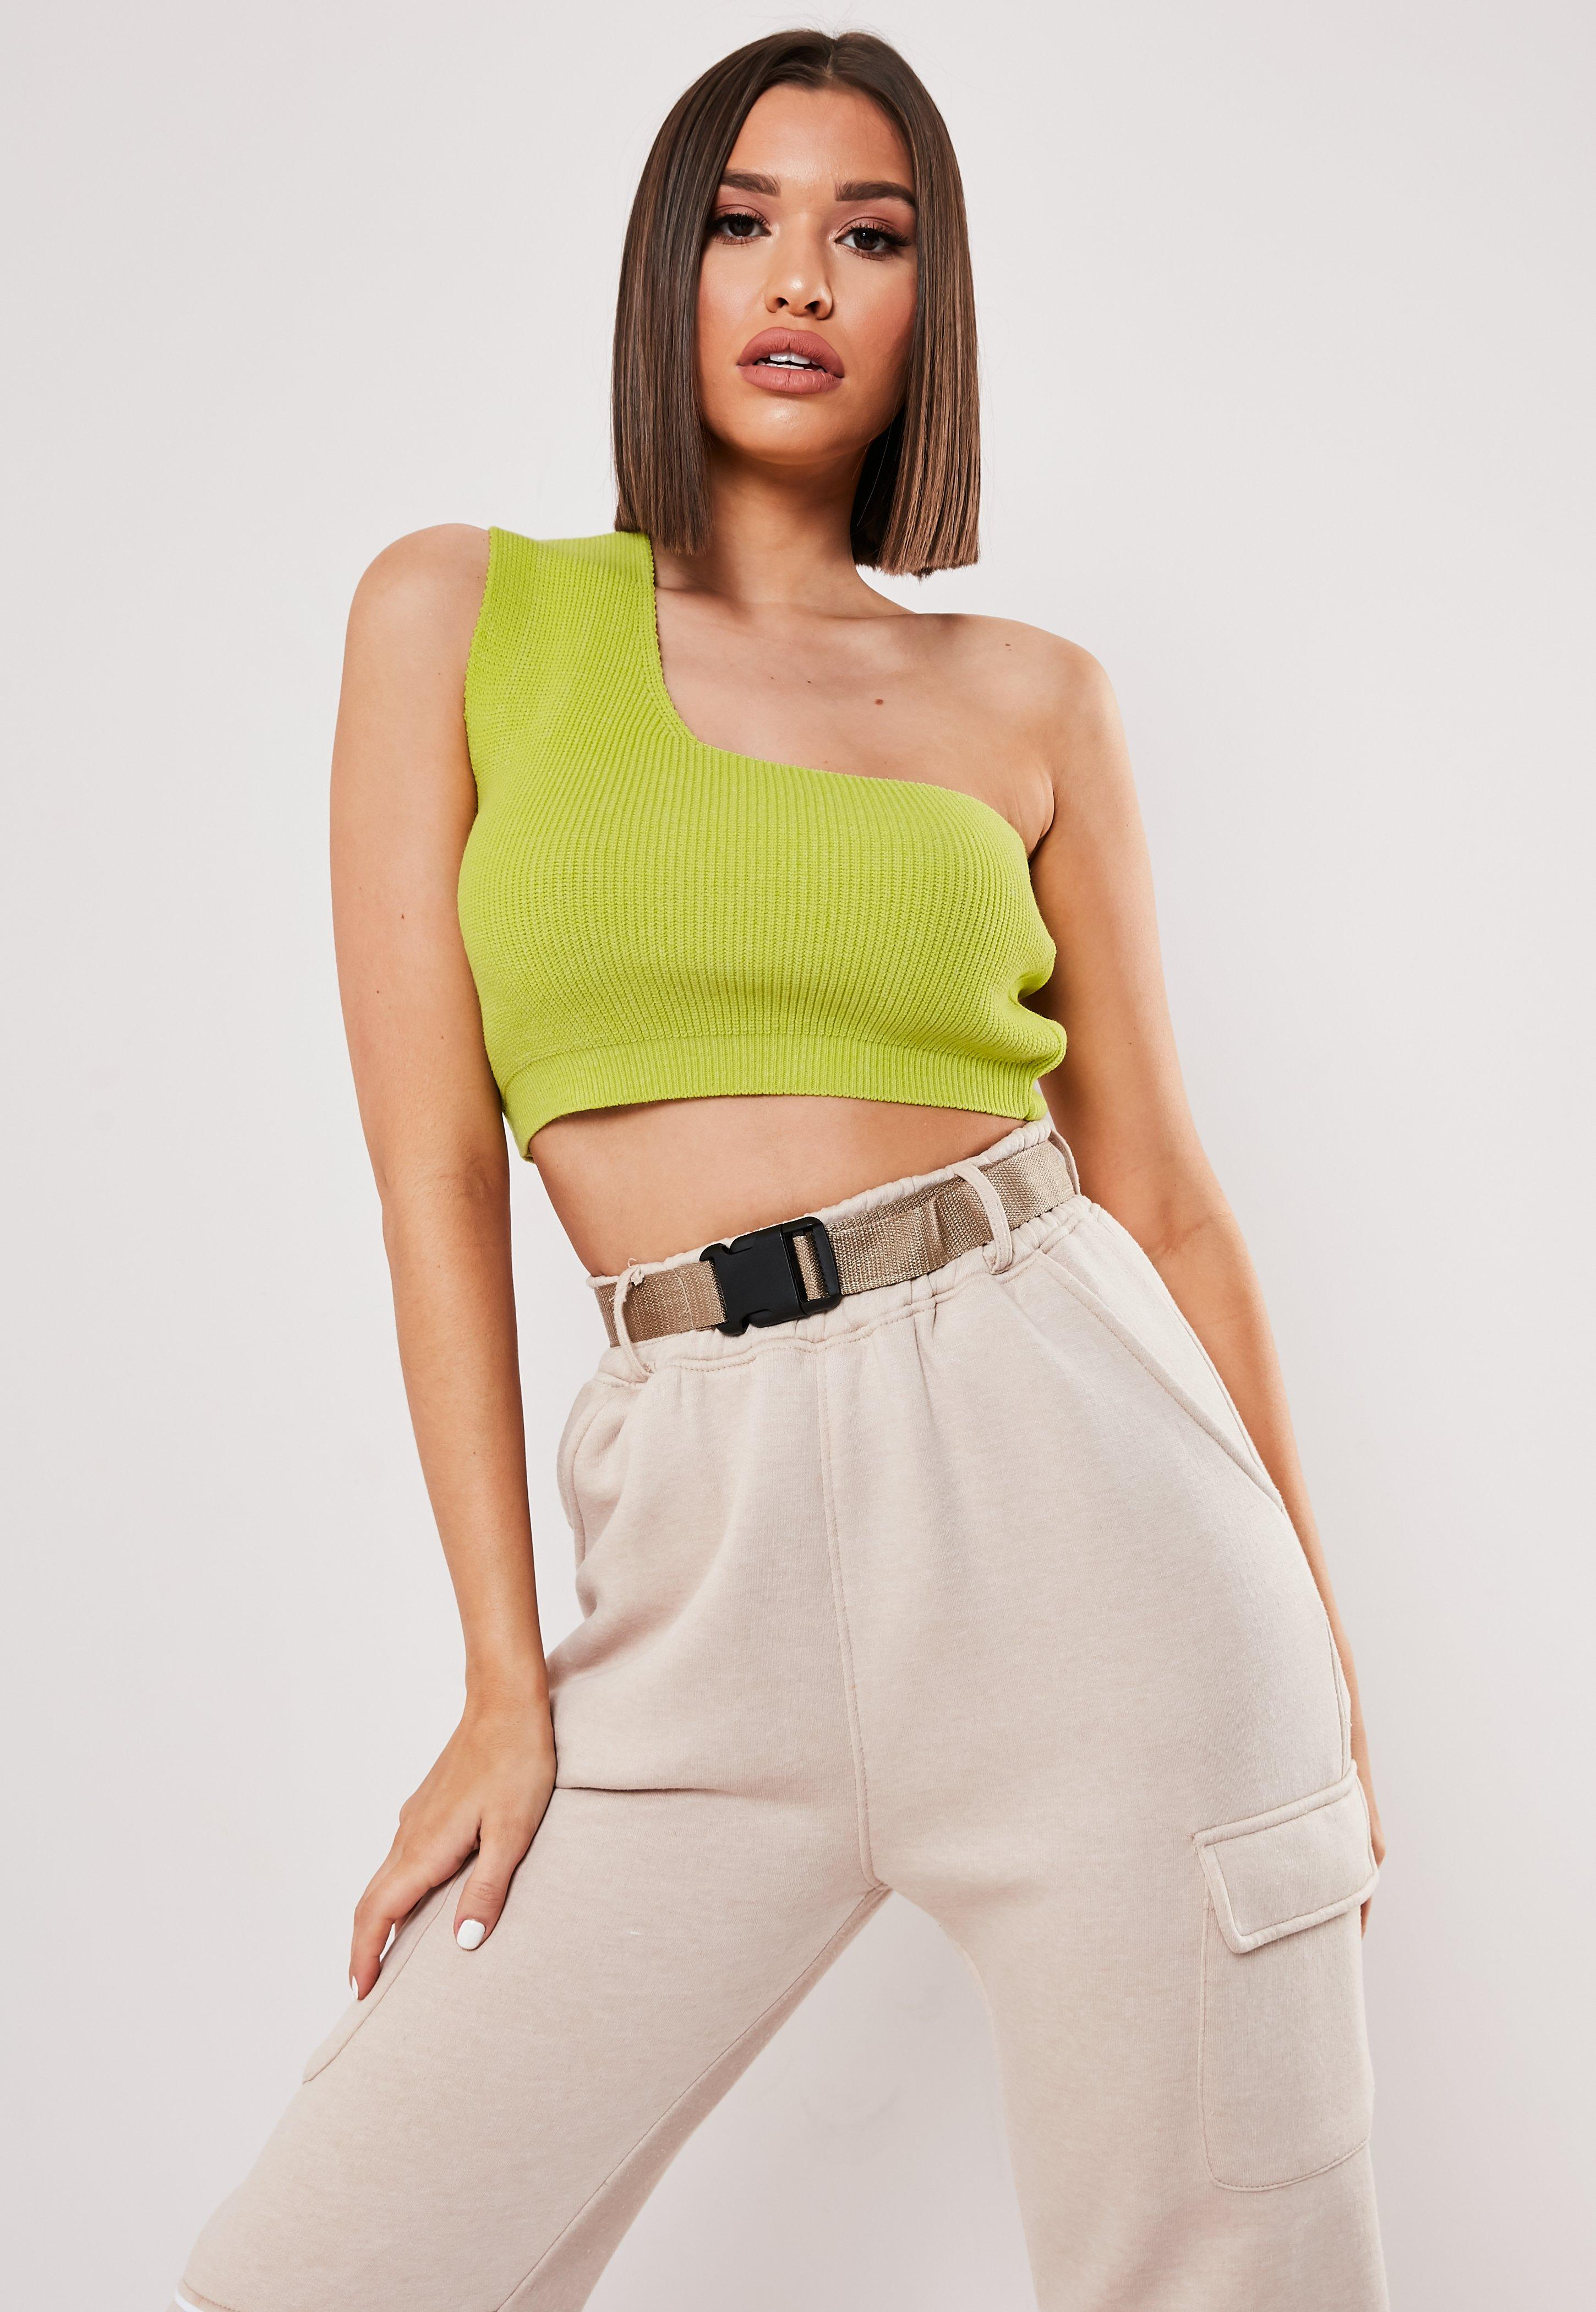 d8296c1d976 Knitwear - Women's Knitted Clothes Online | Missguided